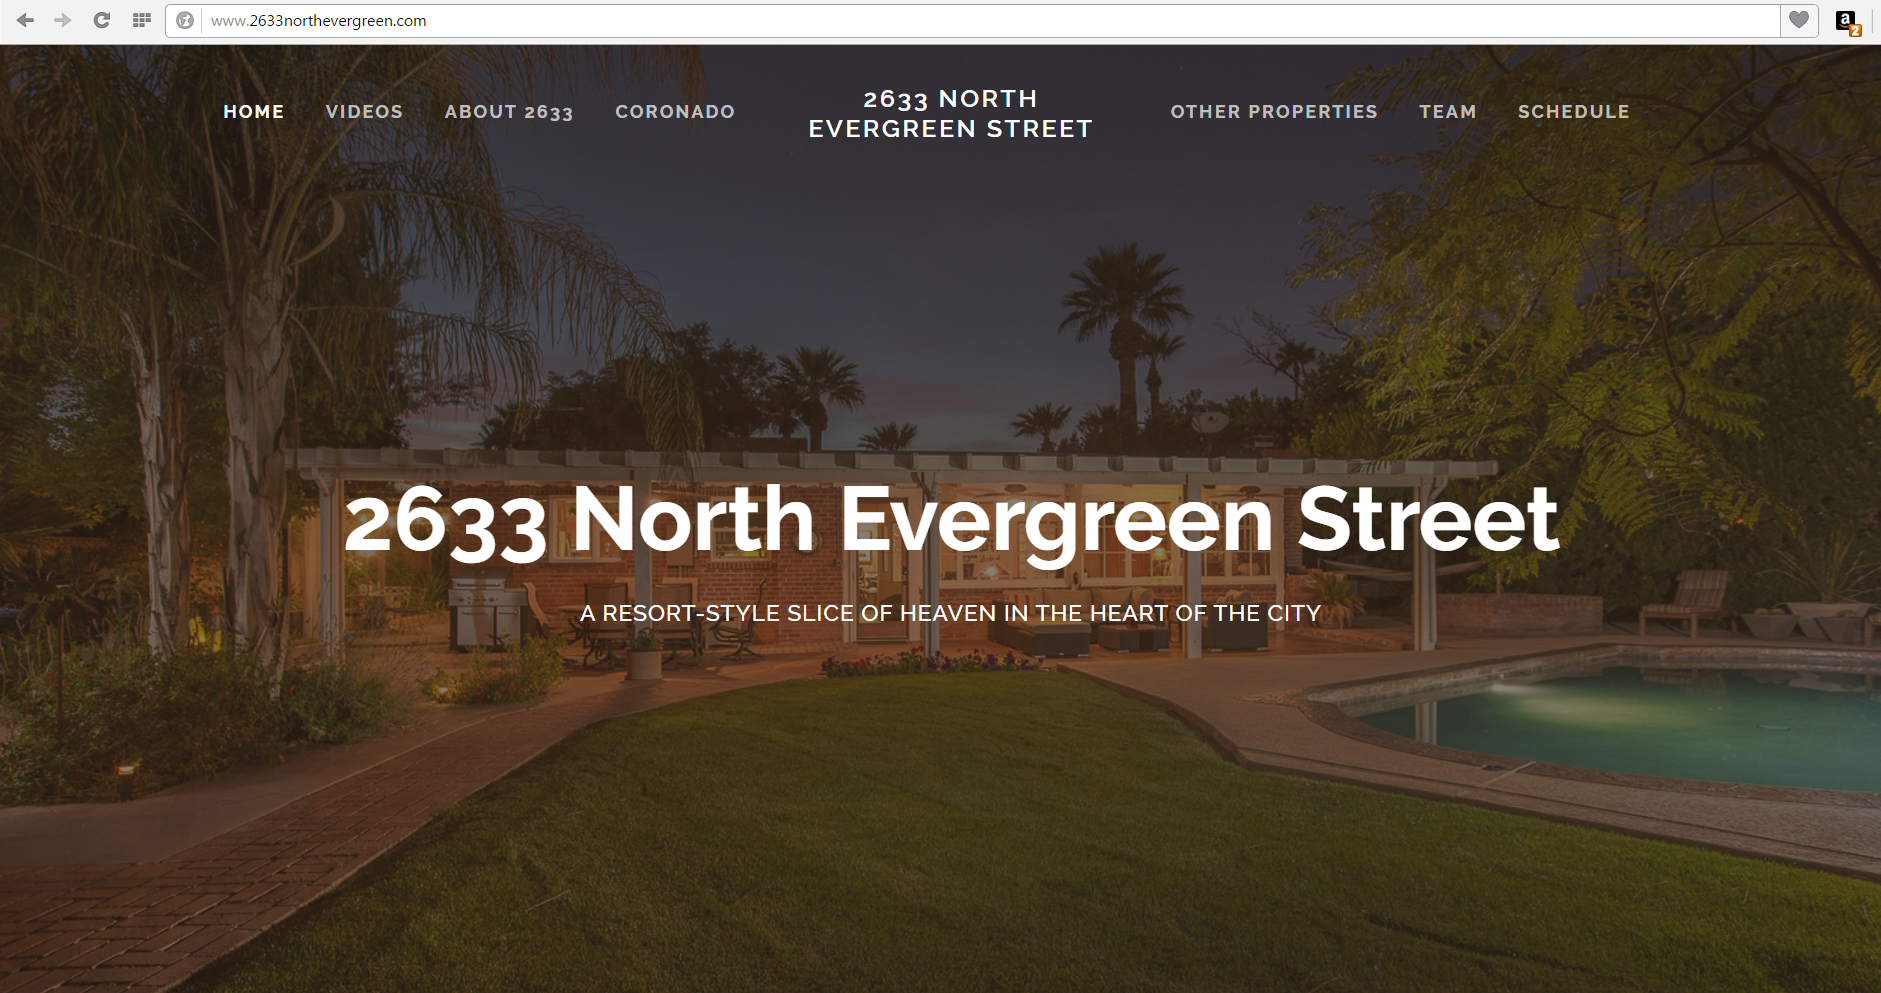 2633 North Evergreen - Click here to visit the website